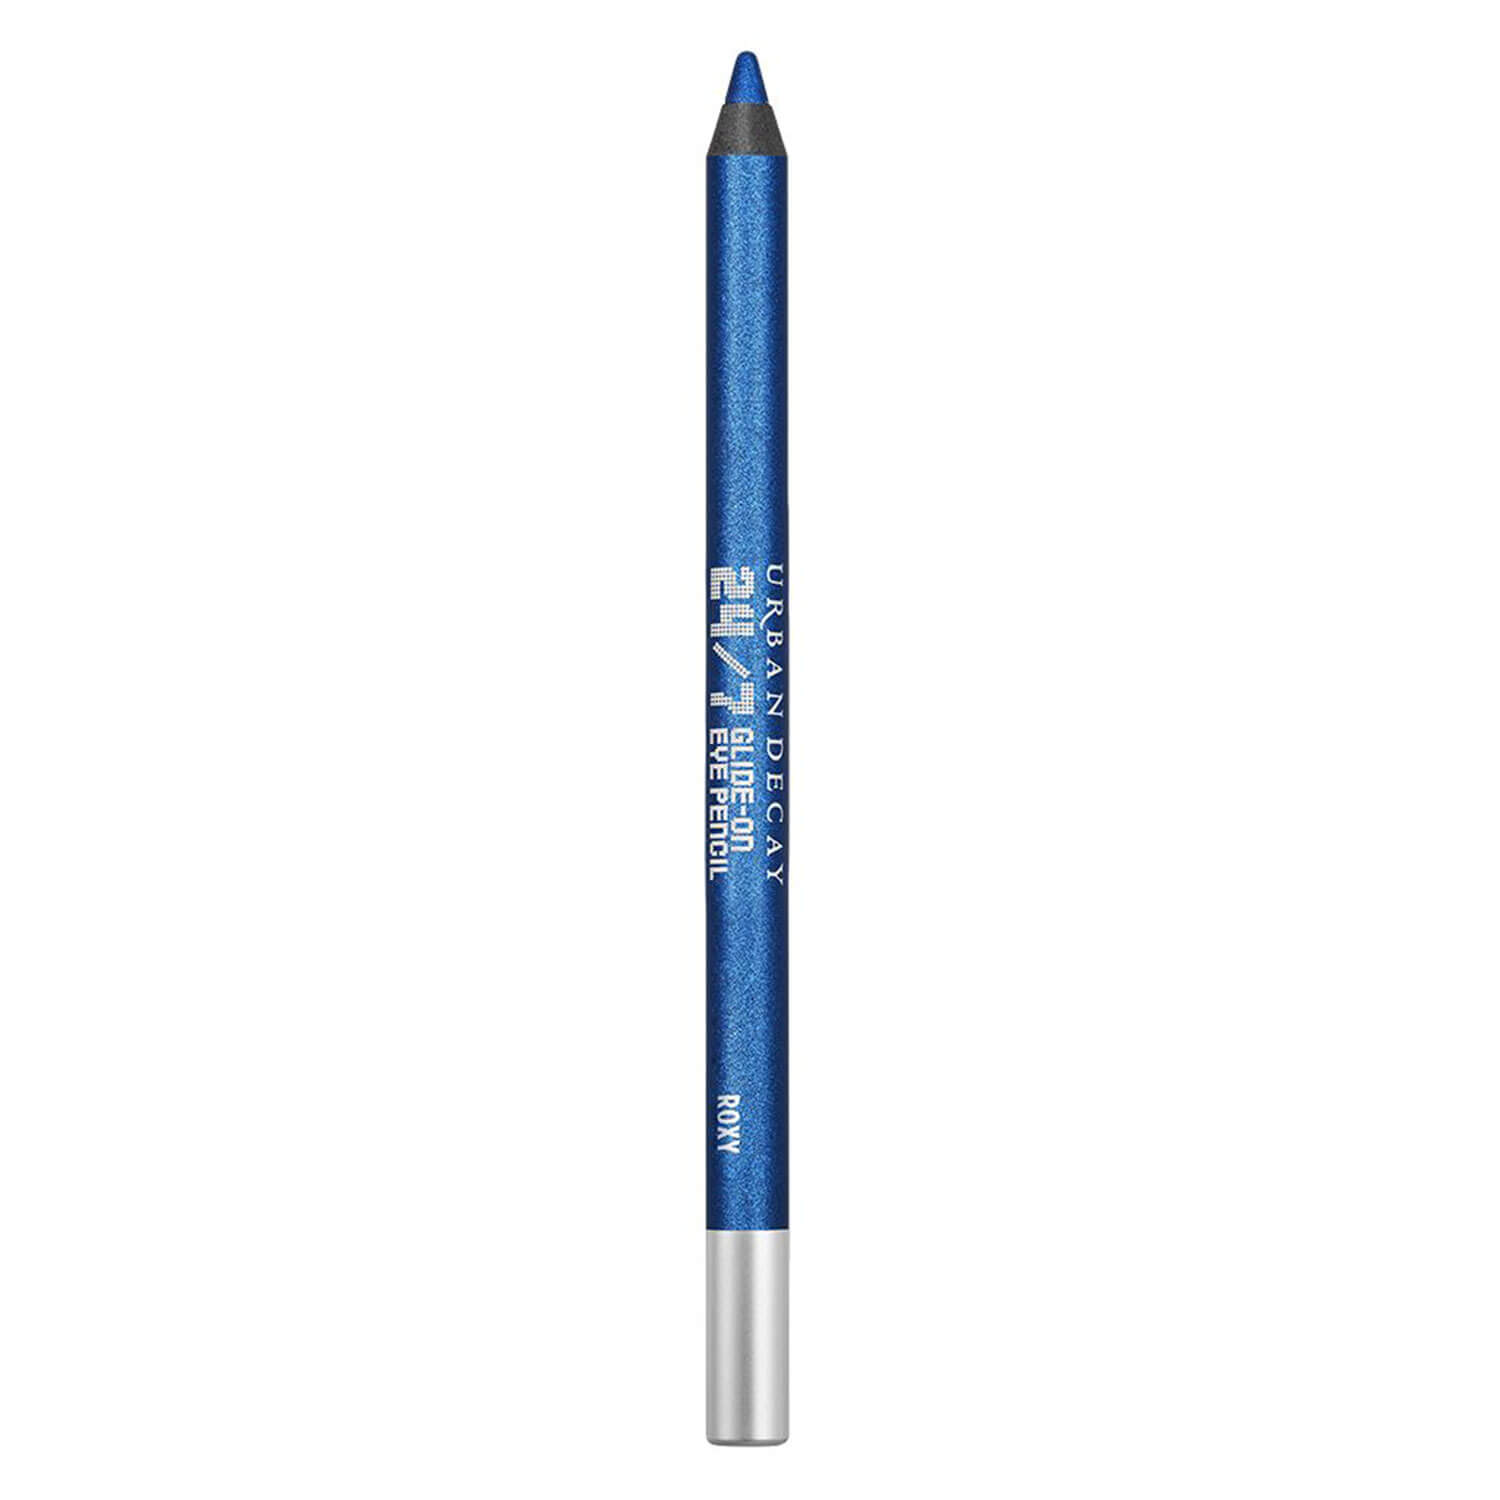 24/7 Glide-On - Eye Pencil Roxy